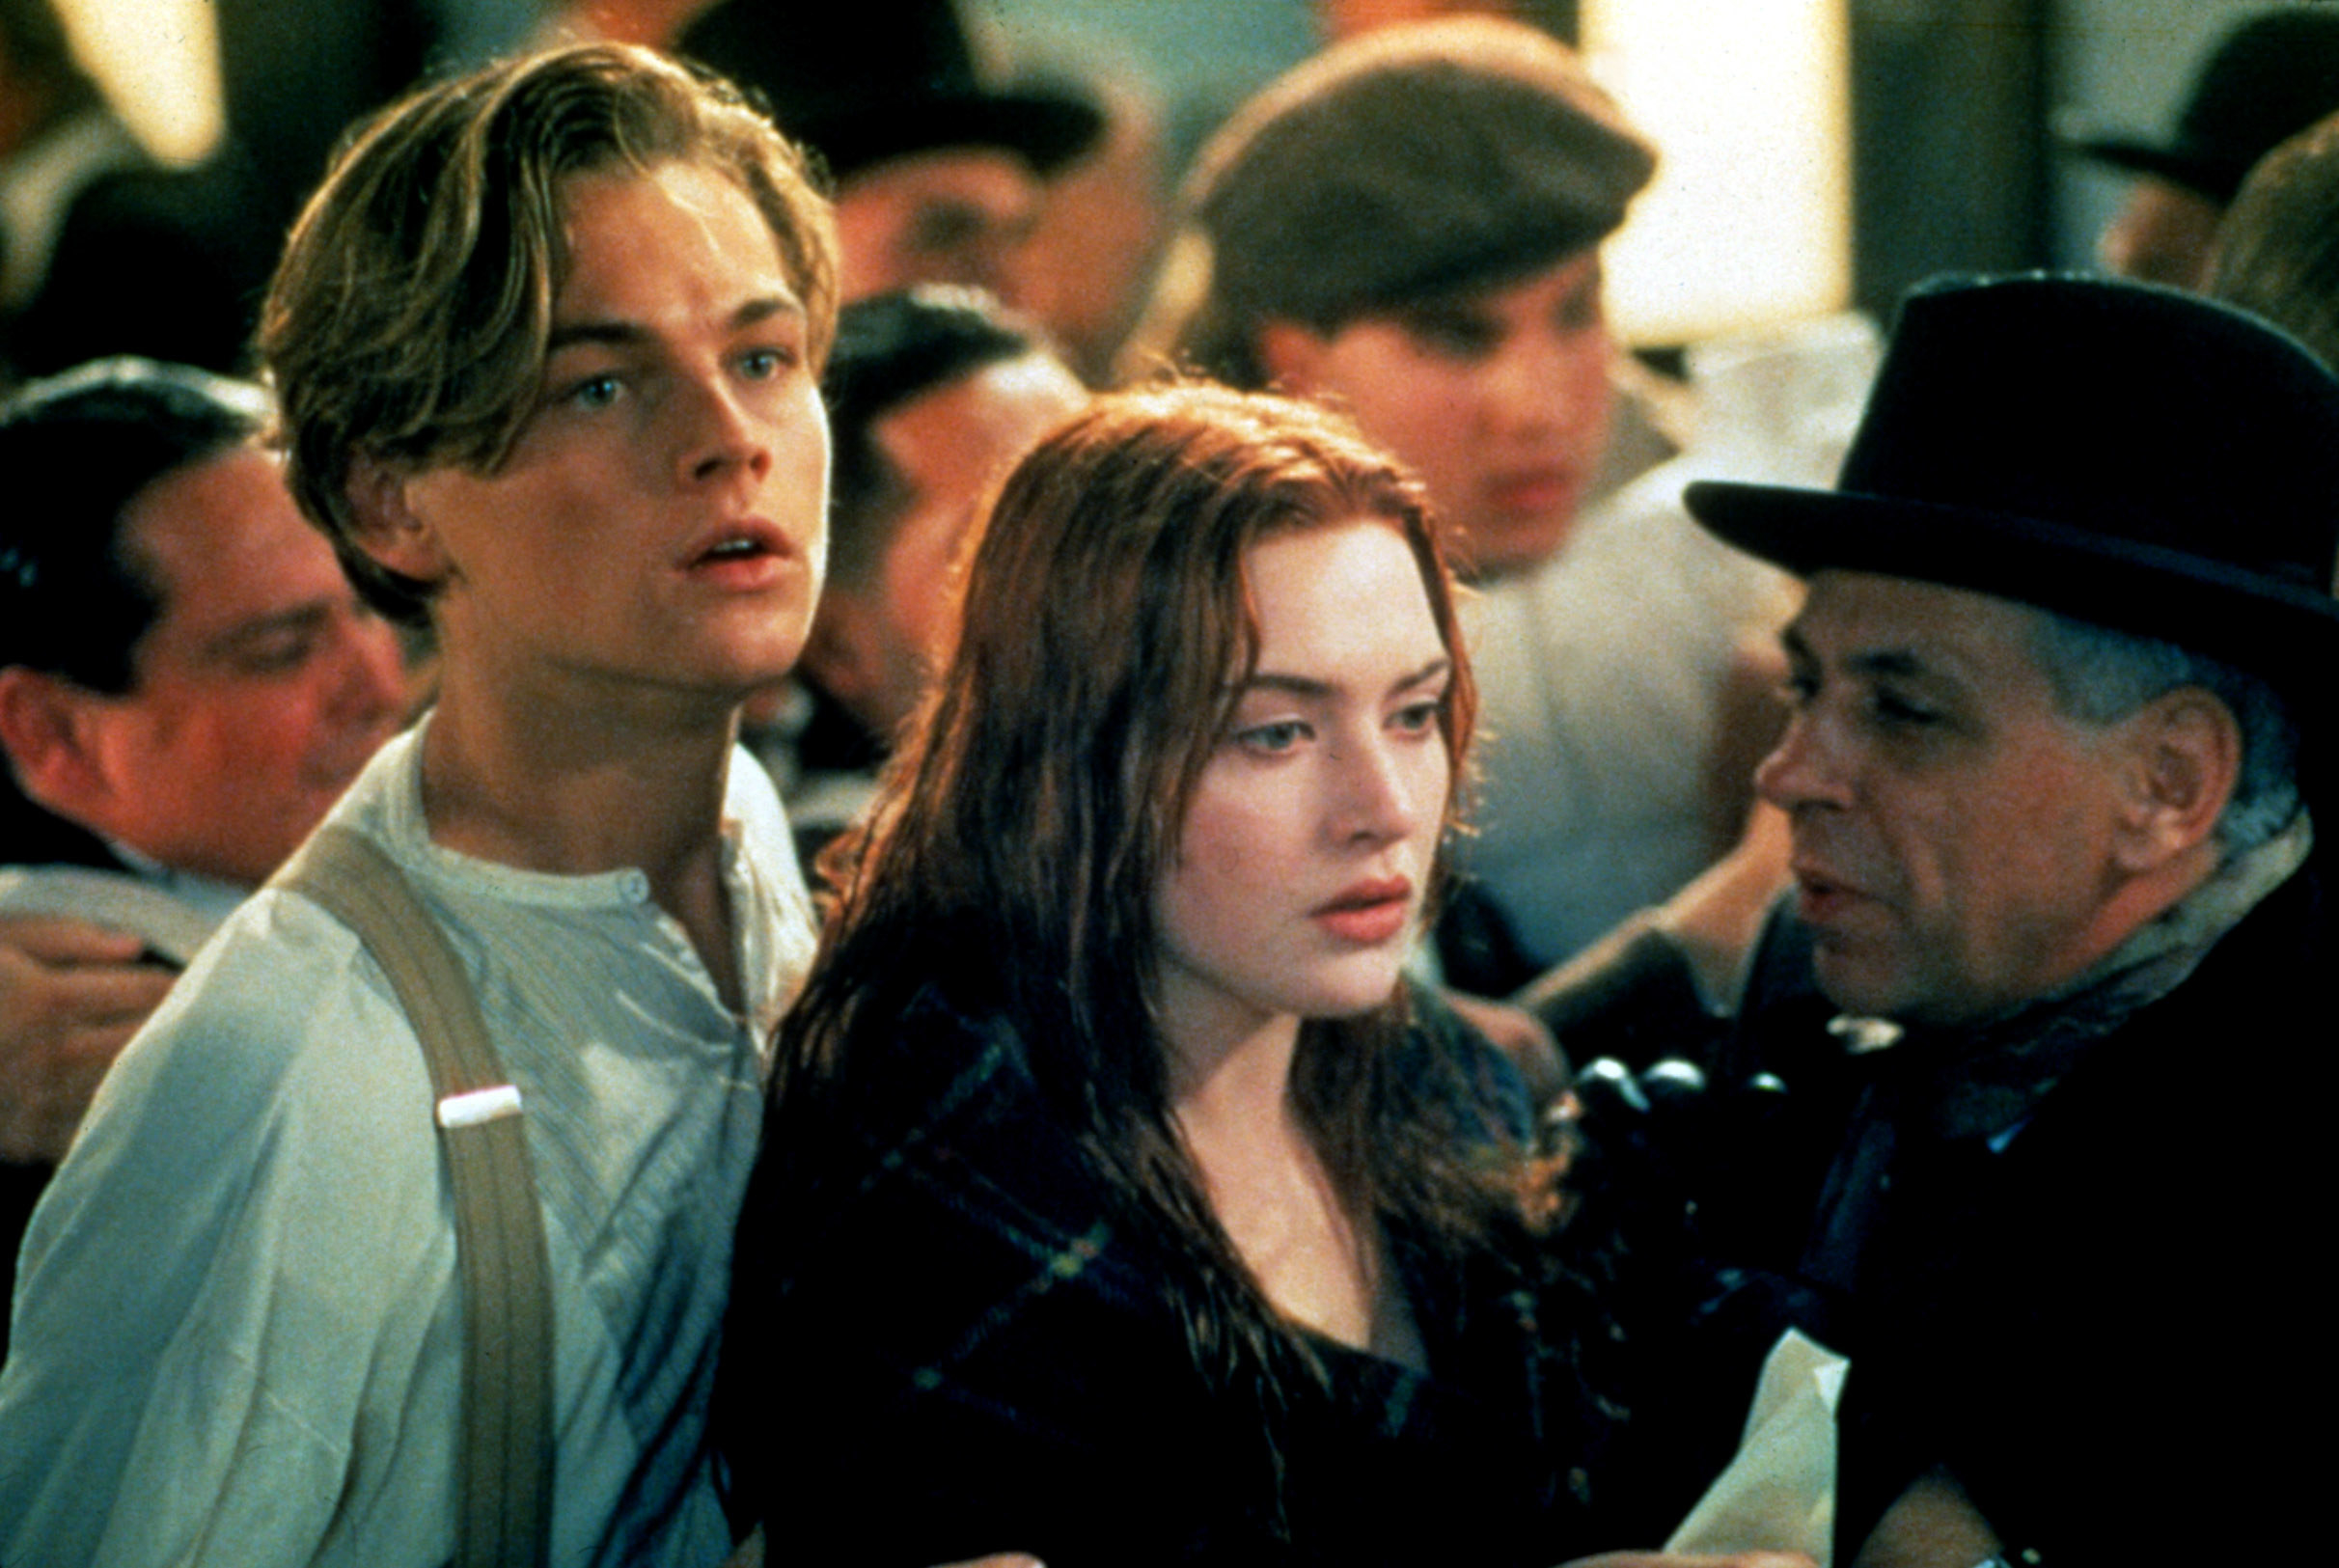 """Leonardo Di Caprio and Kate Winslet as Jack and Rose in """"Titanic"""""""